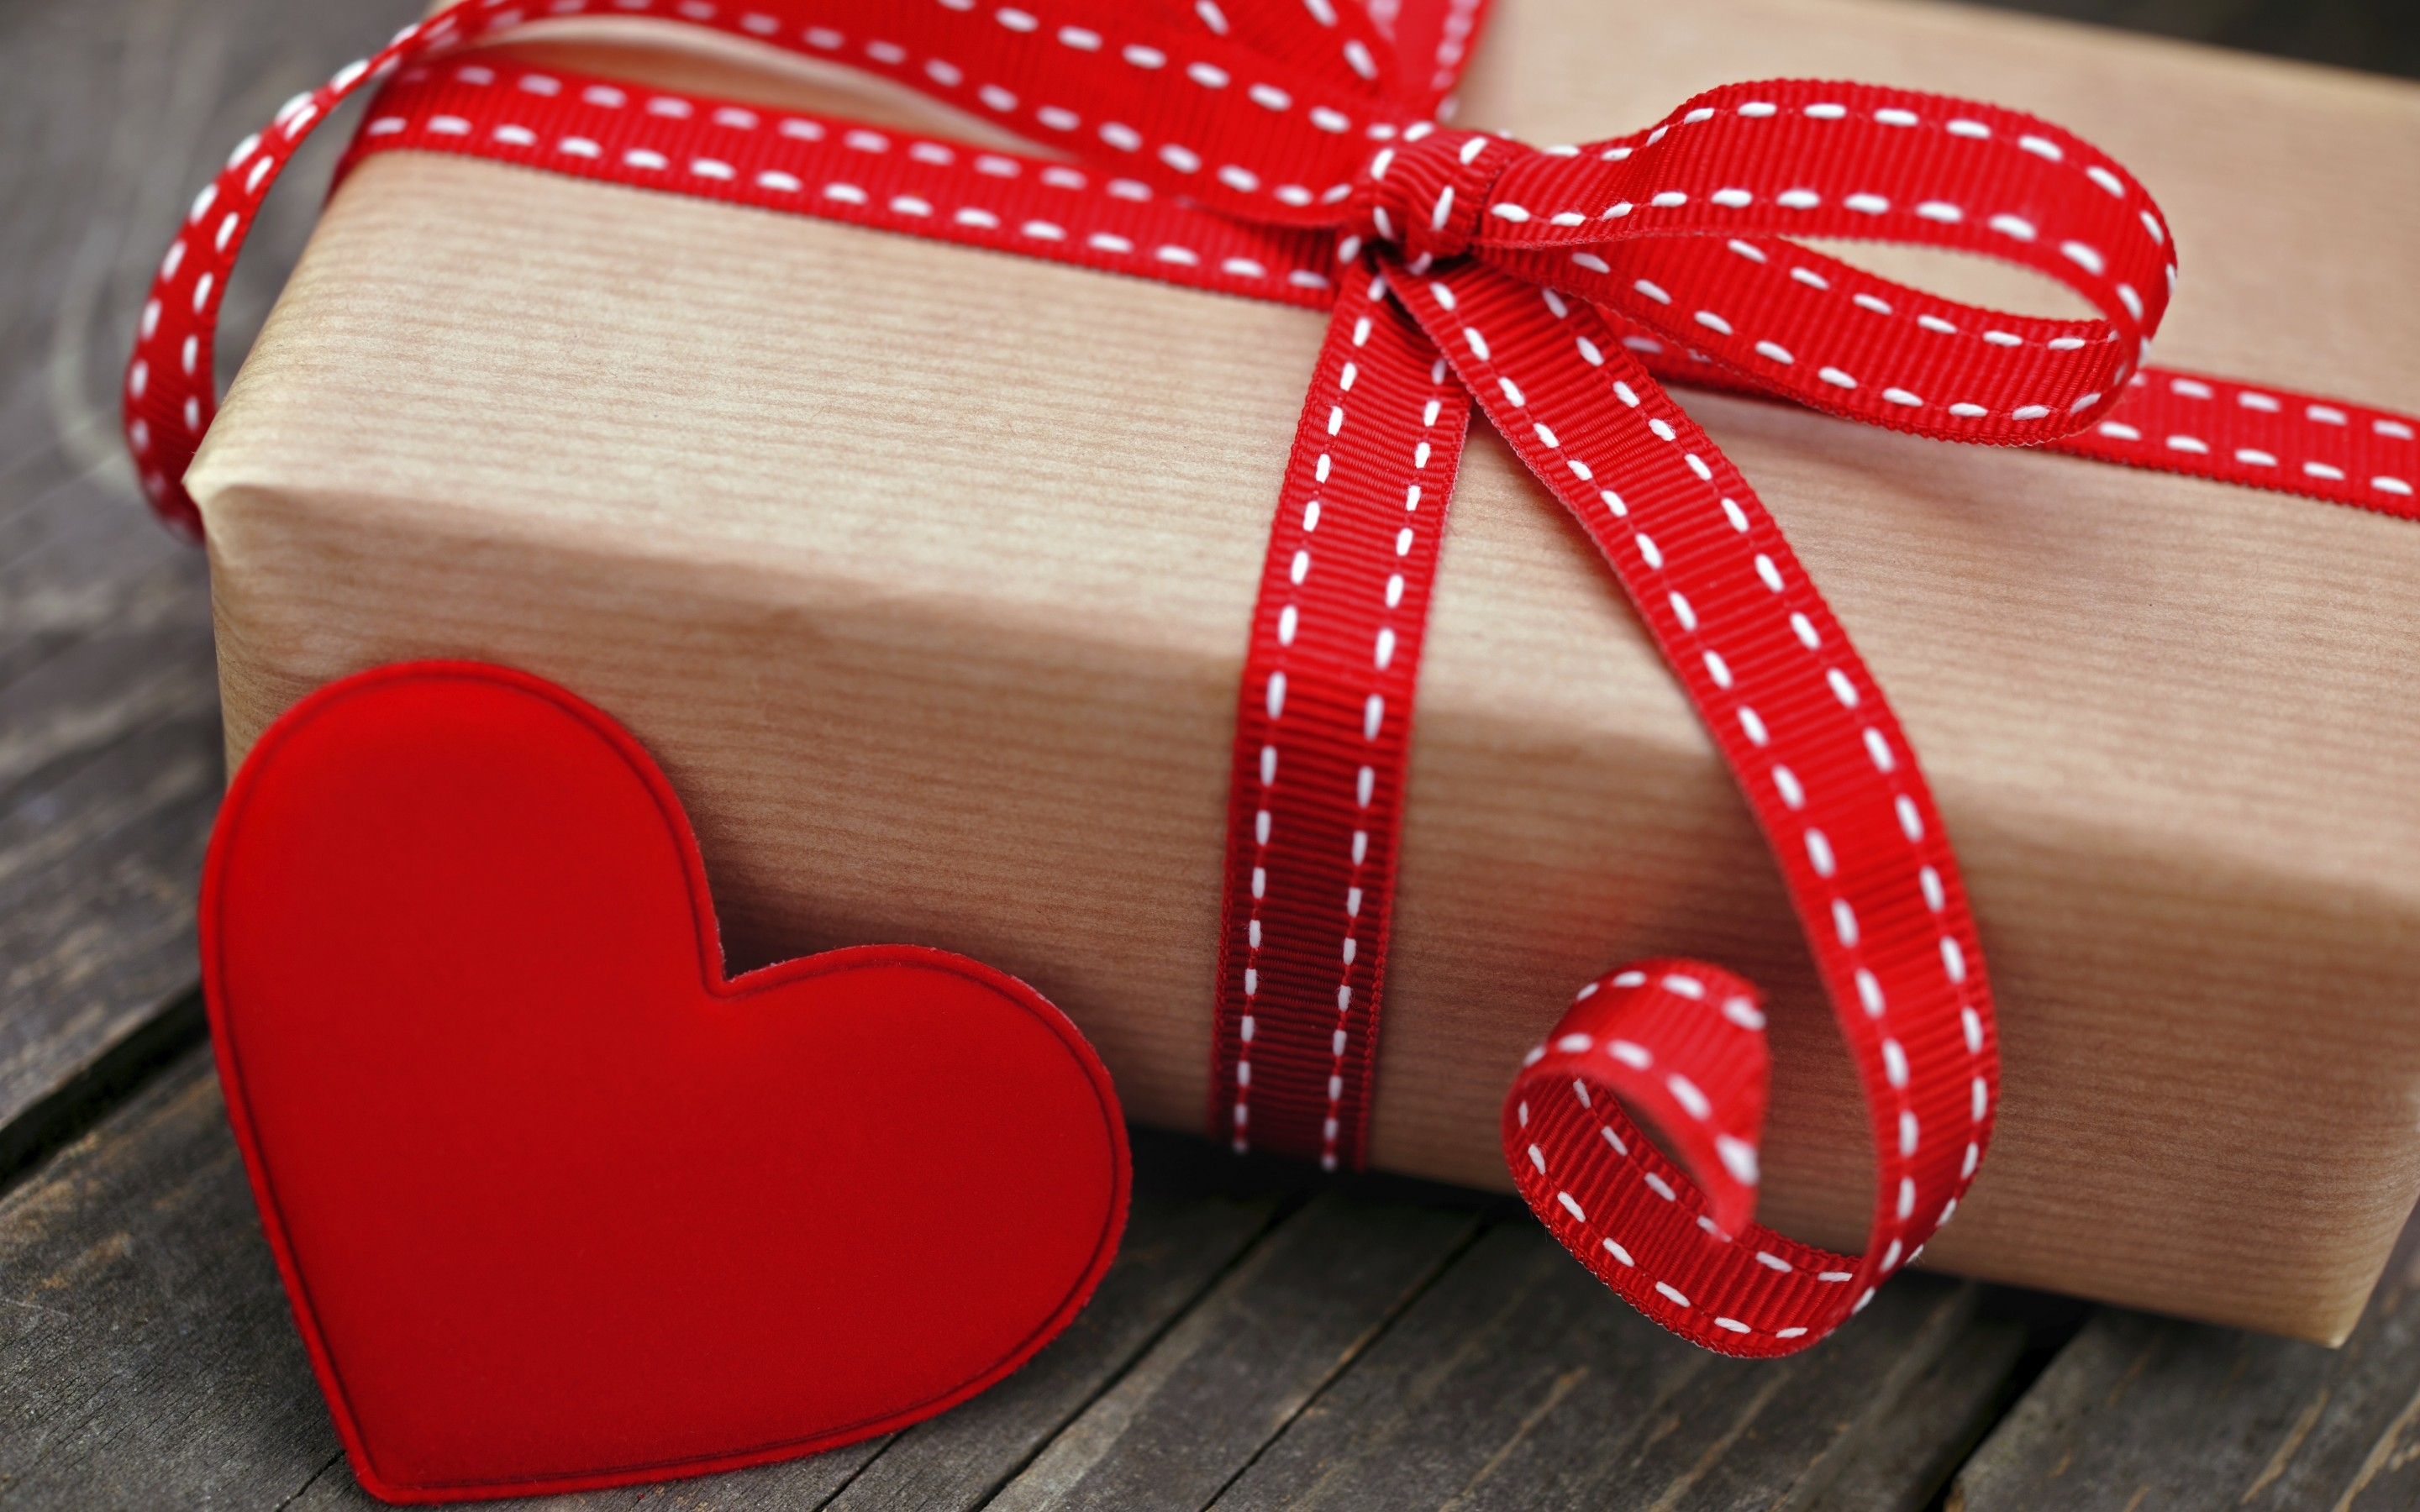 121114 download wallpaper Love, Box, Present, Gift, Holiday, Heart, Ribbons, Ribbon screensavers and pictures for free